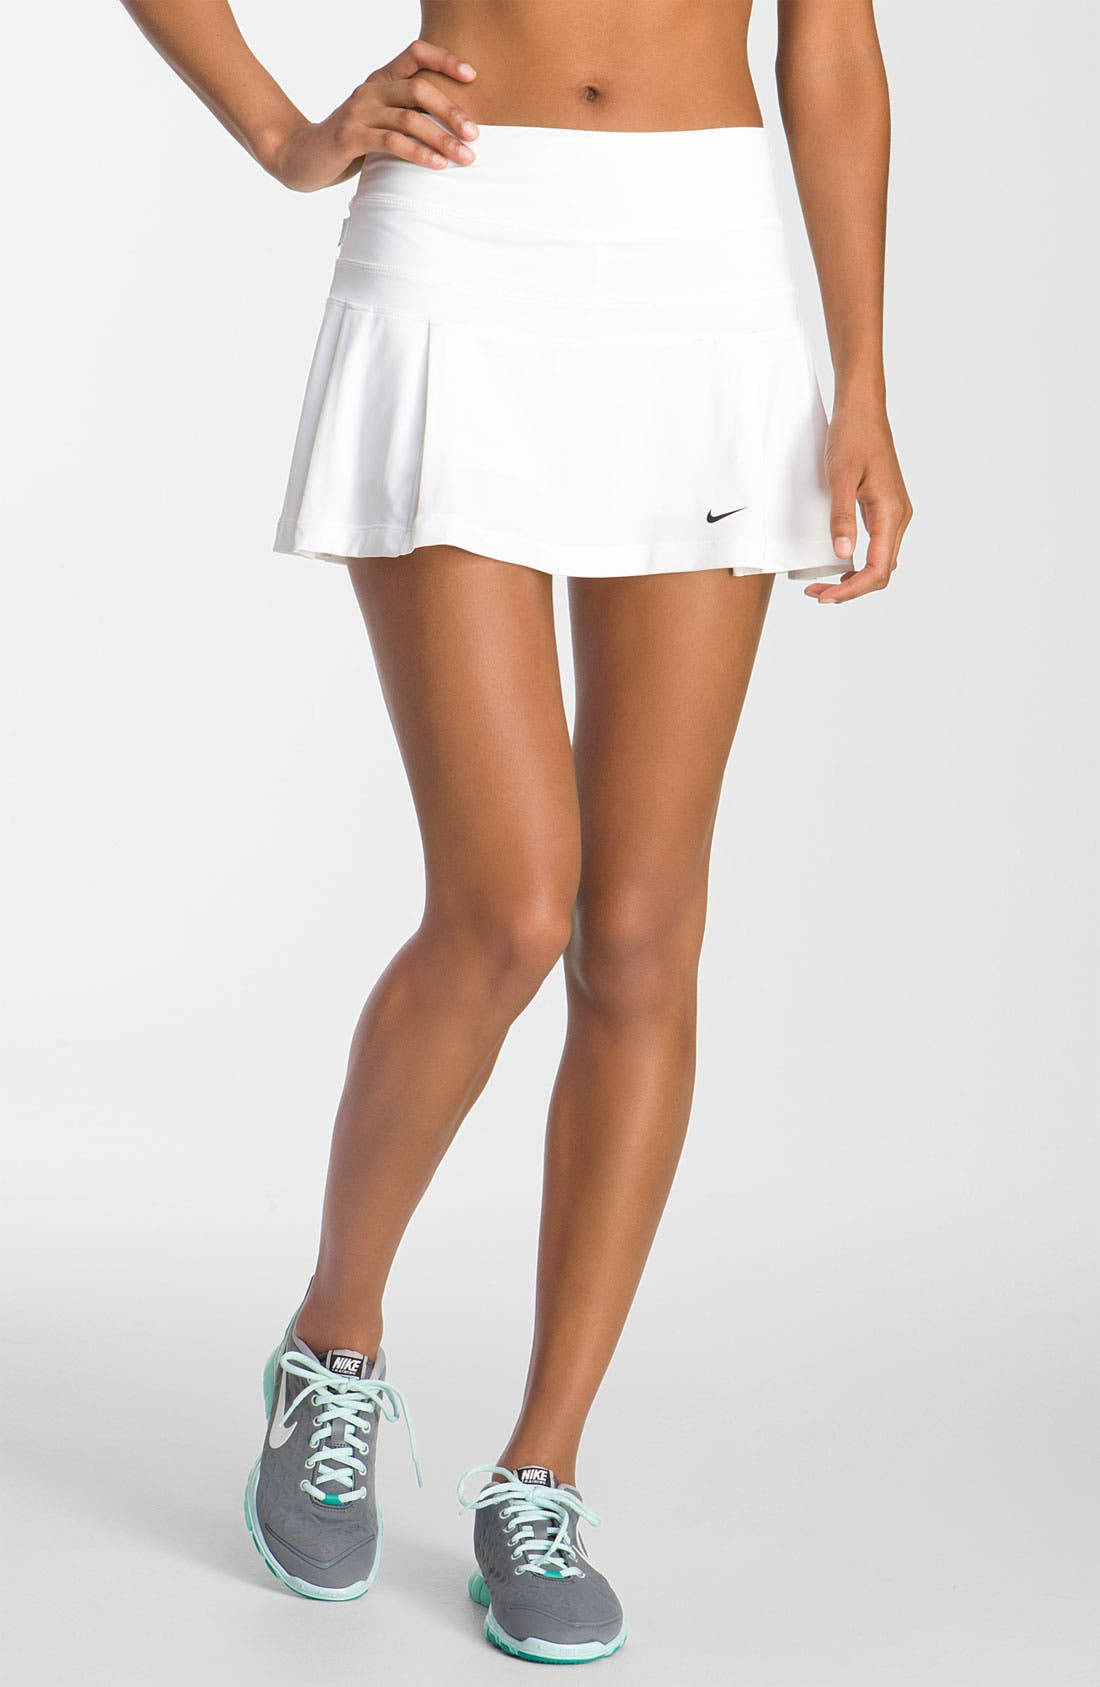 Alternate Image 1 Selected - Nike 'Share Athlete' Tennis Skirt